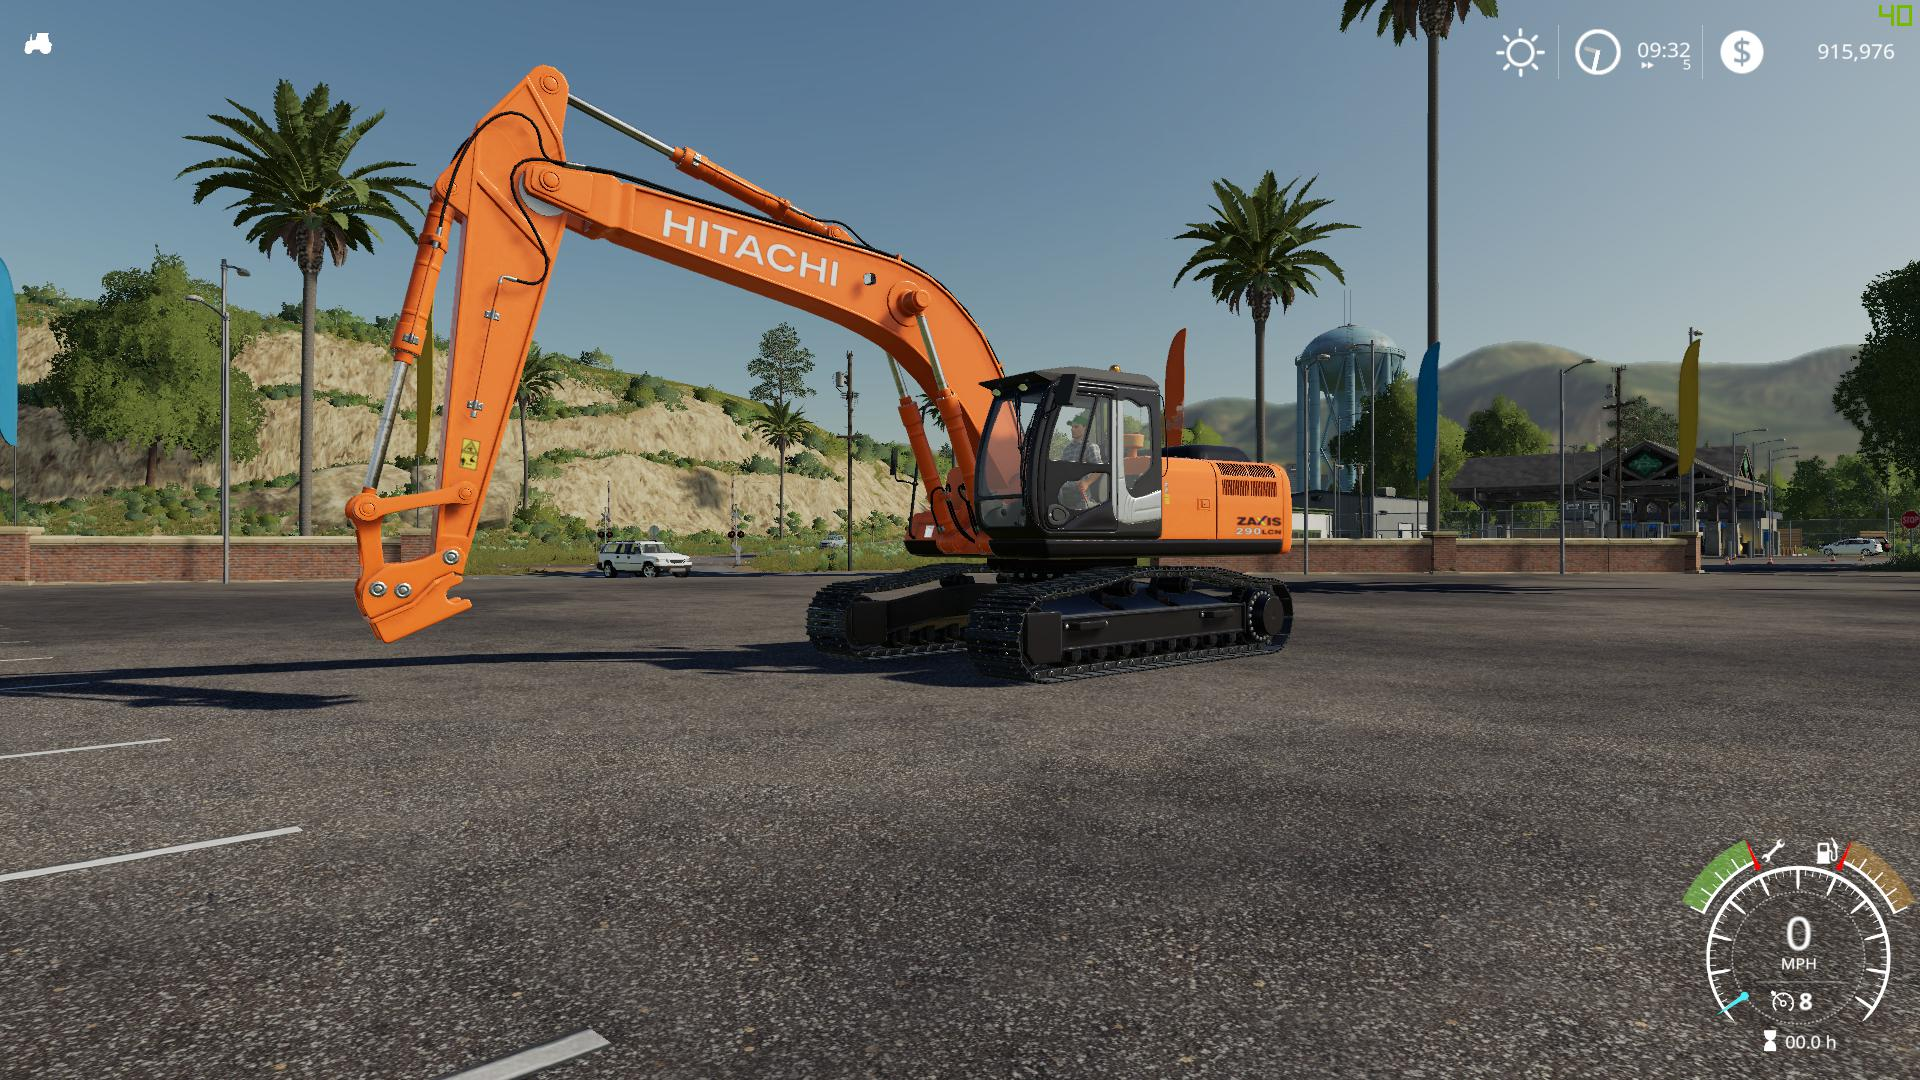 FS19 - My Edit of The Hitachi ZX290LC V2.0